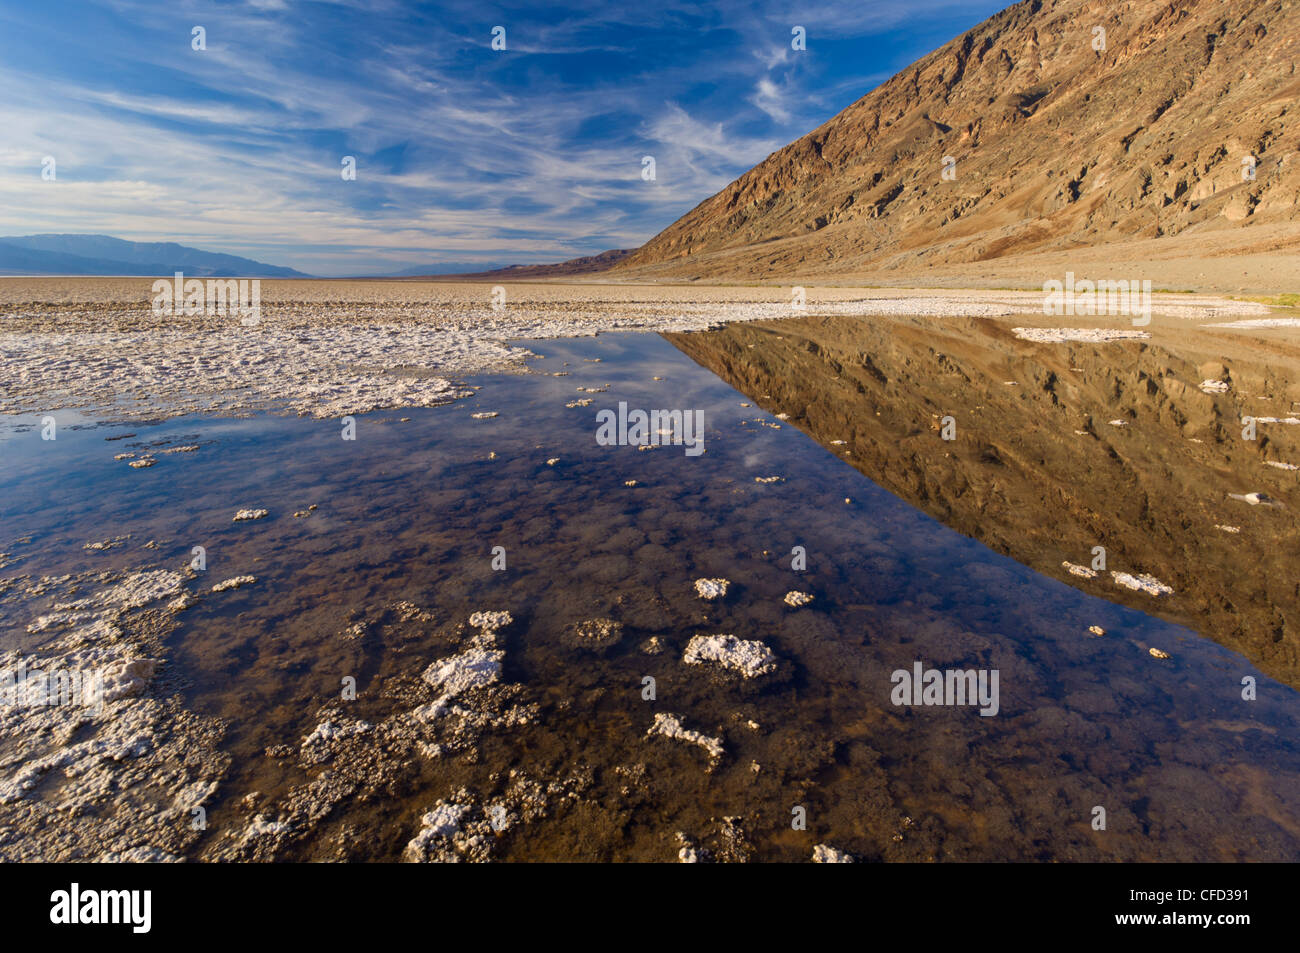 A springfed pool near the salt pans at Badwater Basin, Death Valley National Park, California, USA - Stock Image